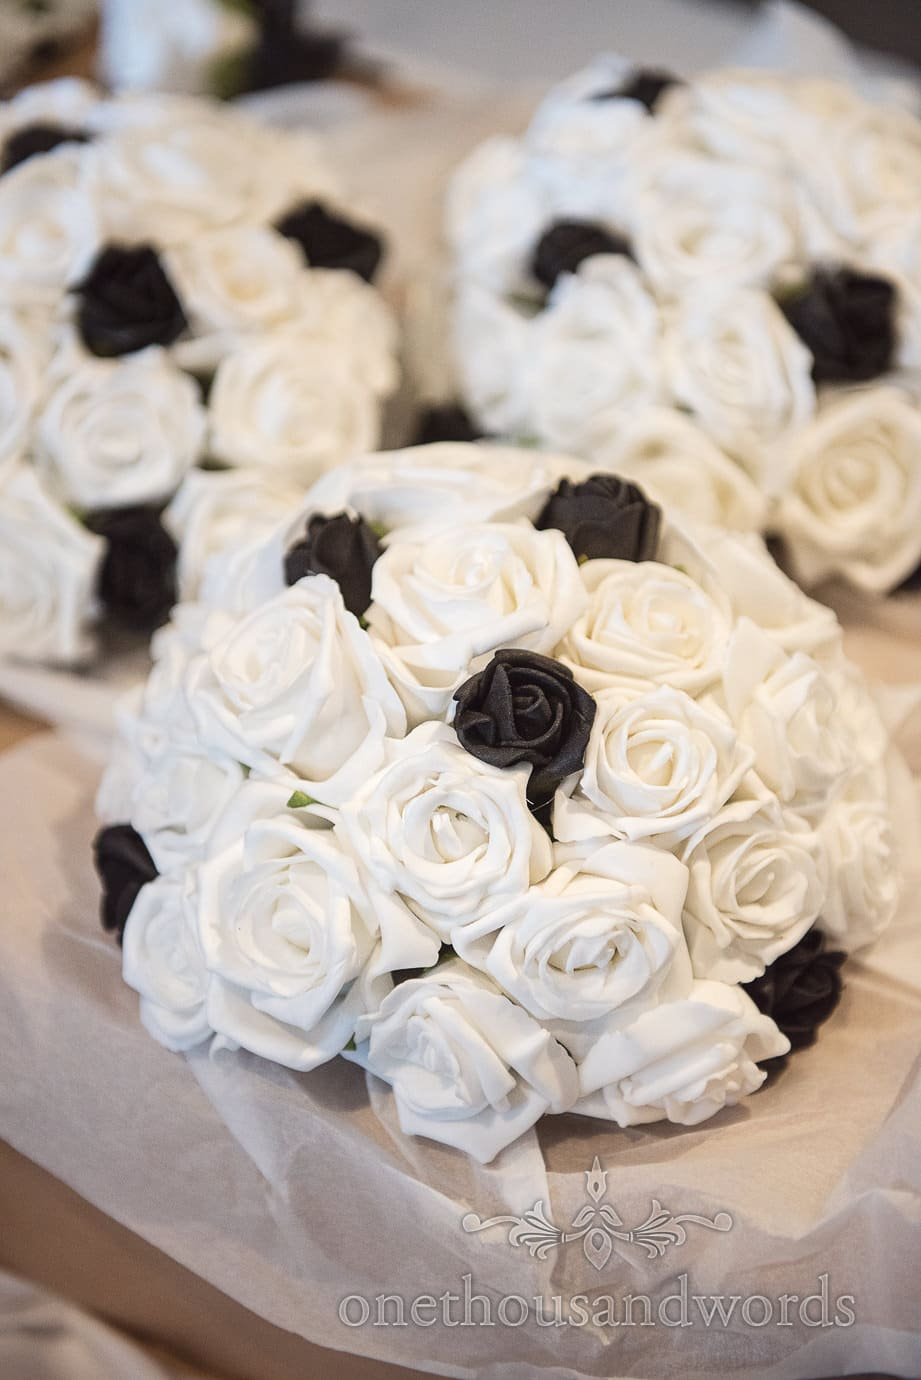 Black and white rose wedding bouquets at black and white themed Rock and Roll wedding